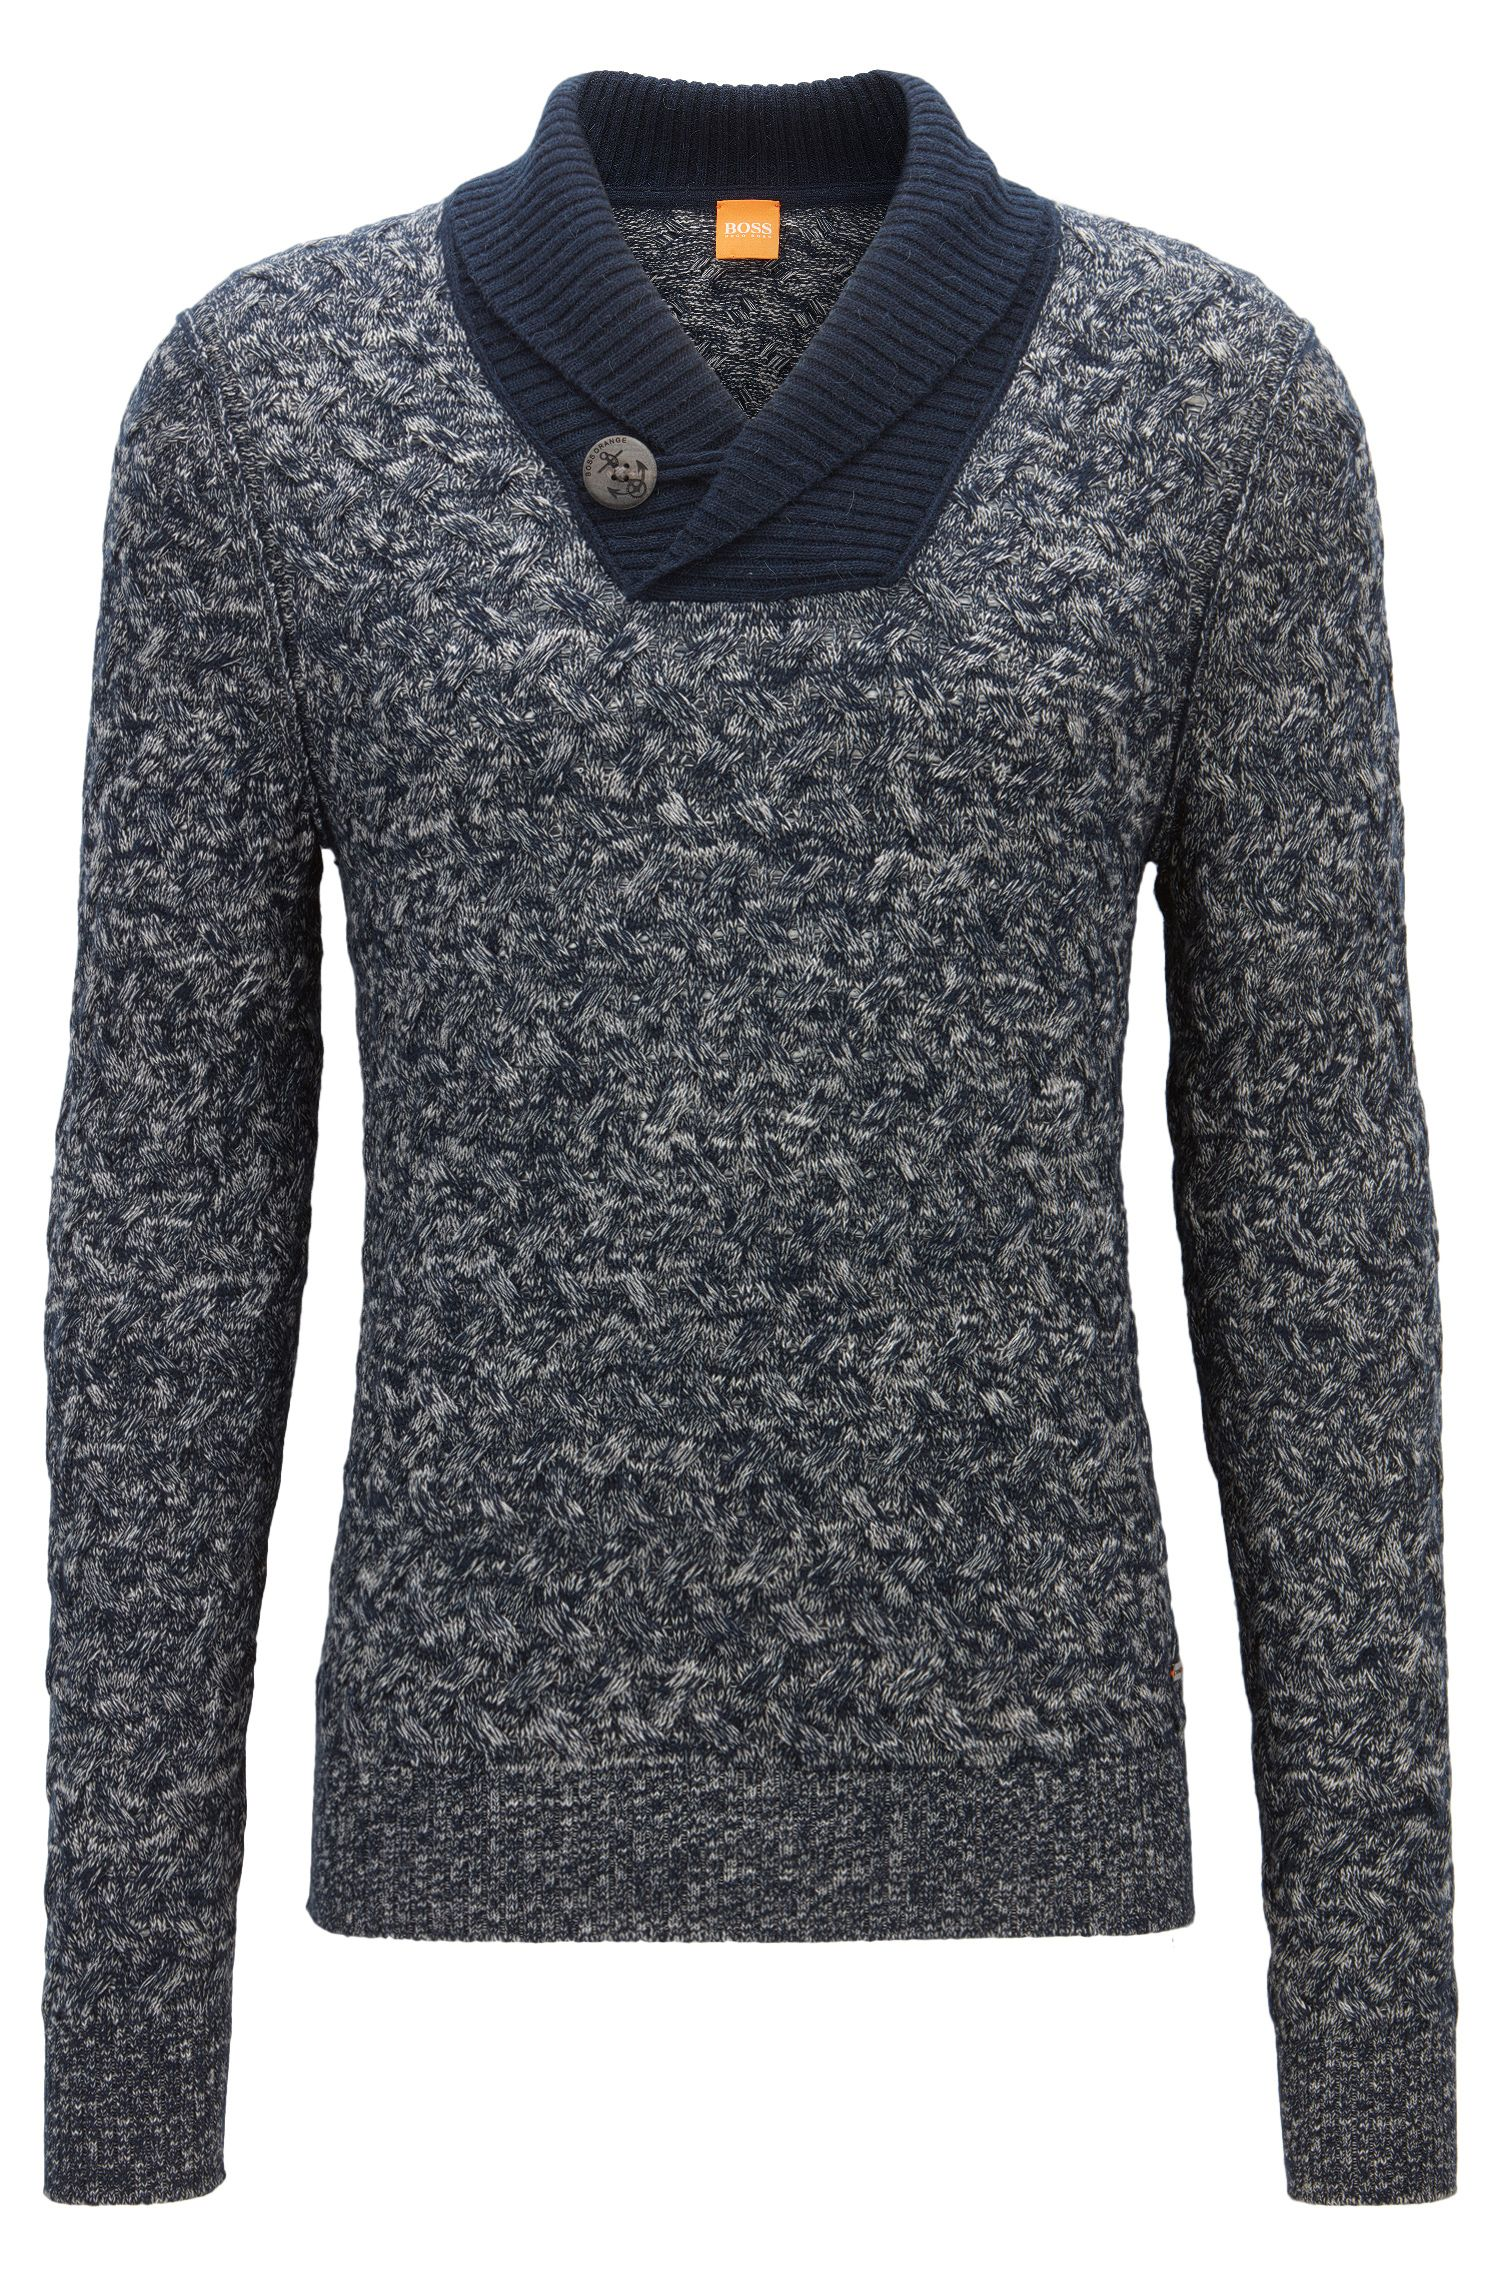 Cotton Blend Sweater | Kradunc